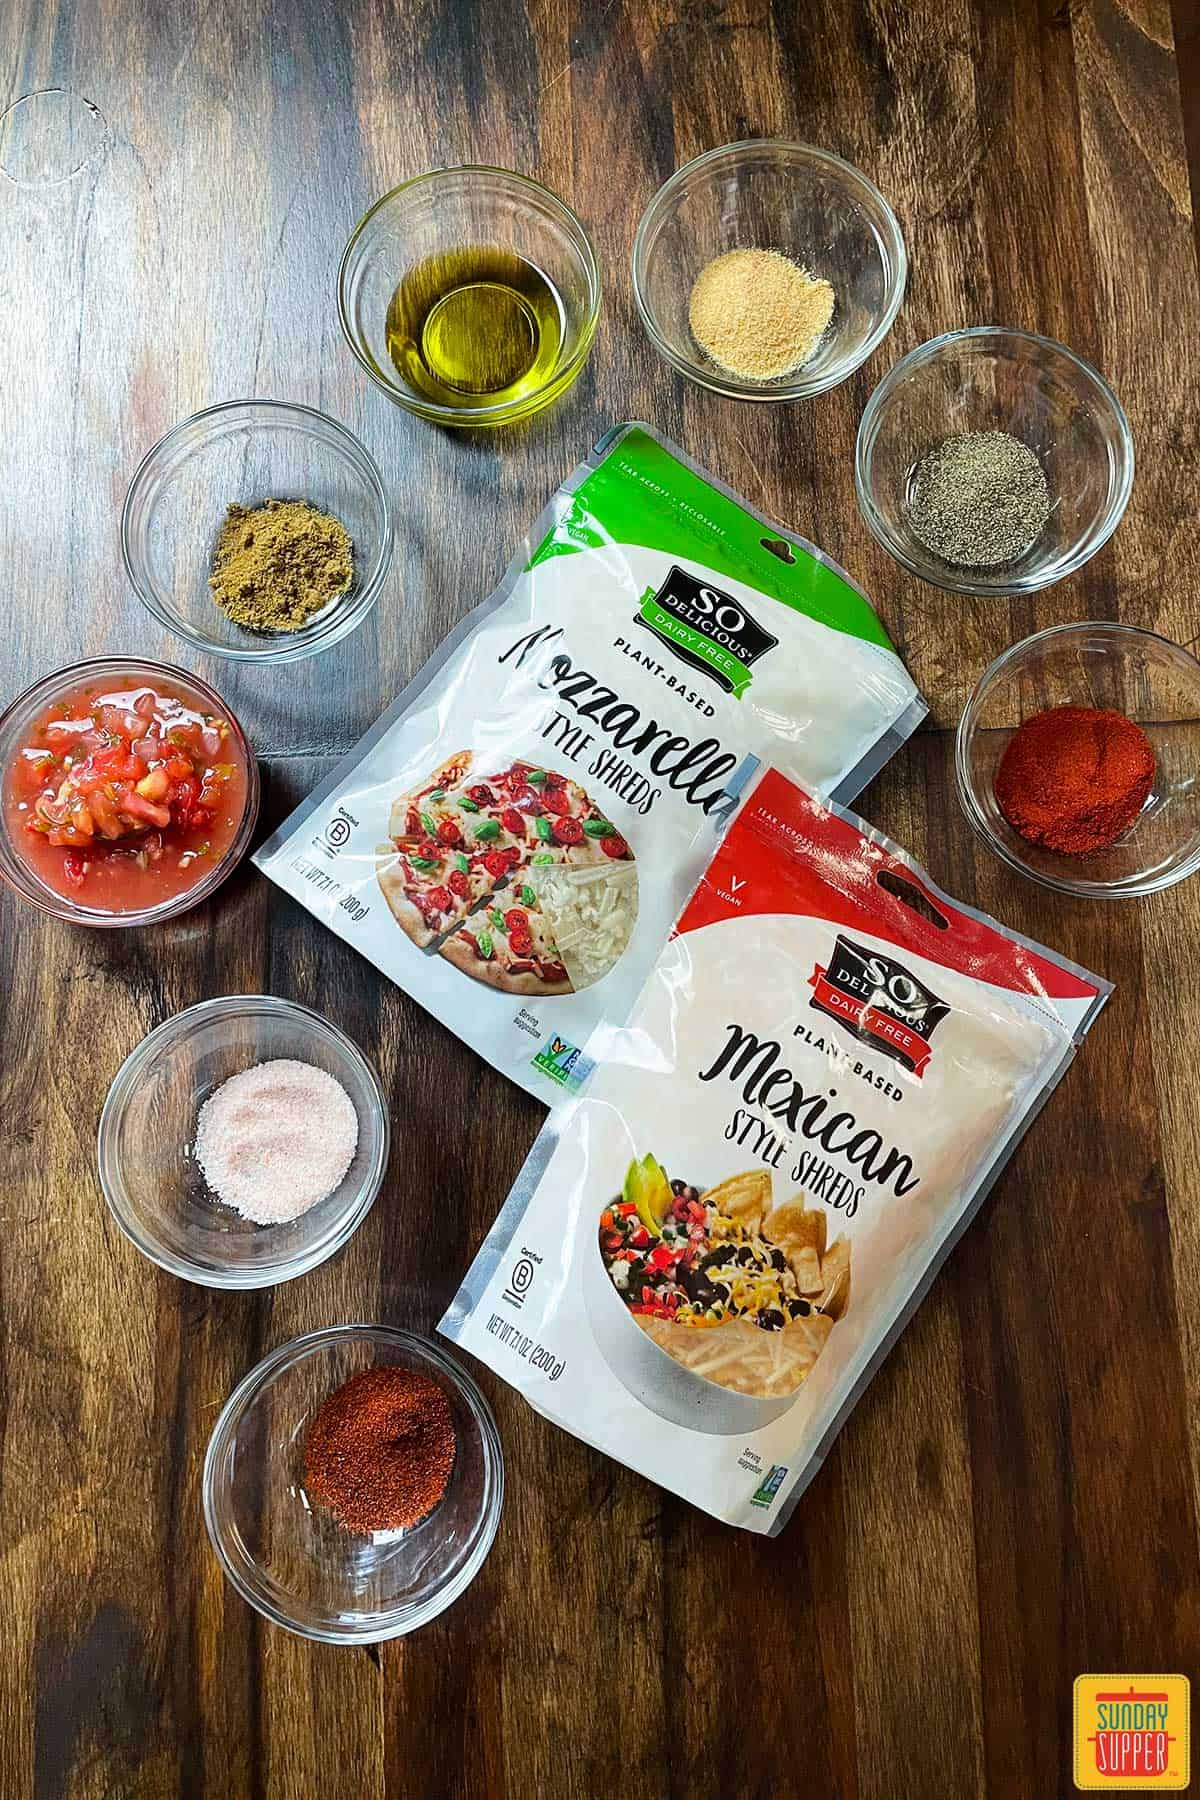 Ingredients to make baked quesadillas on a table